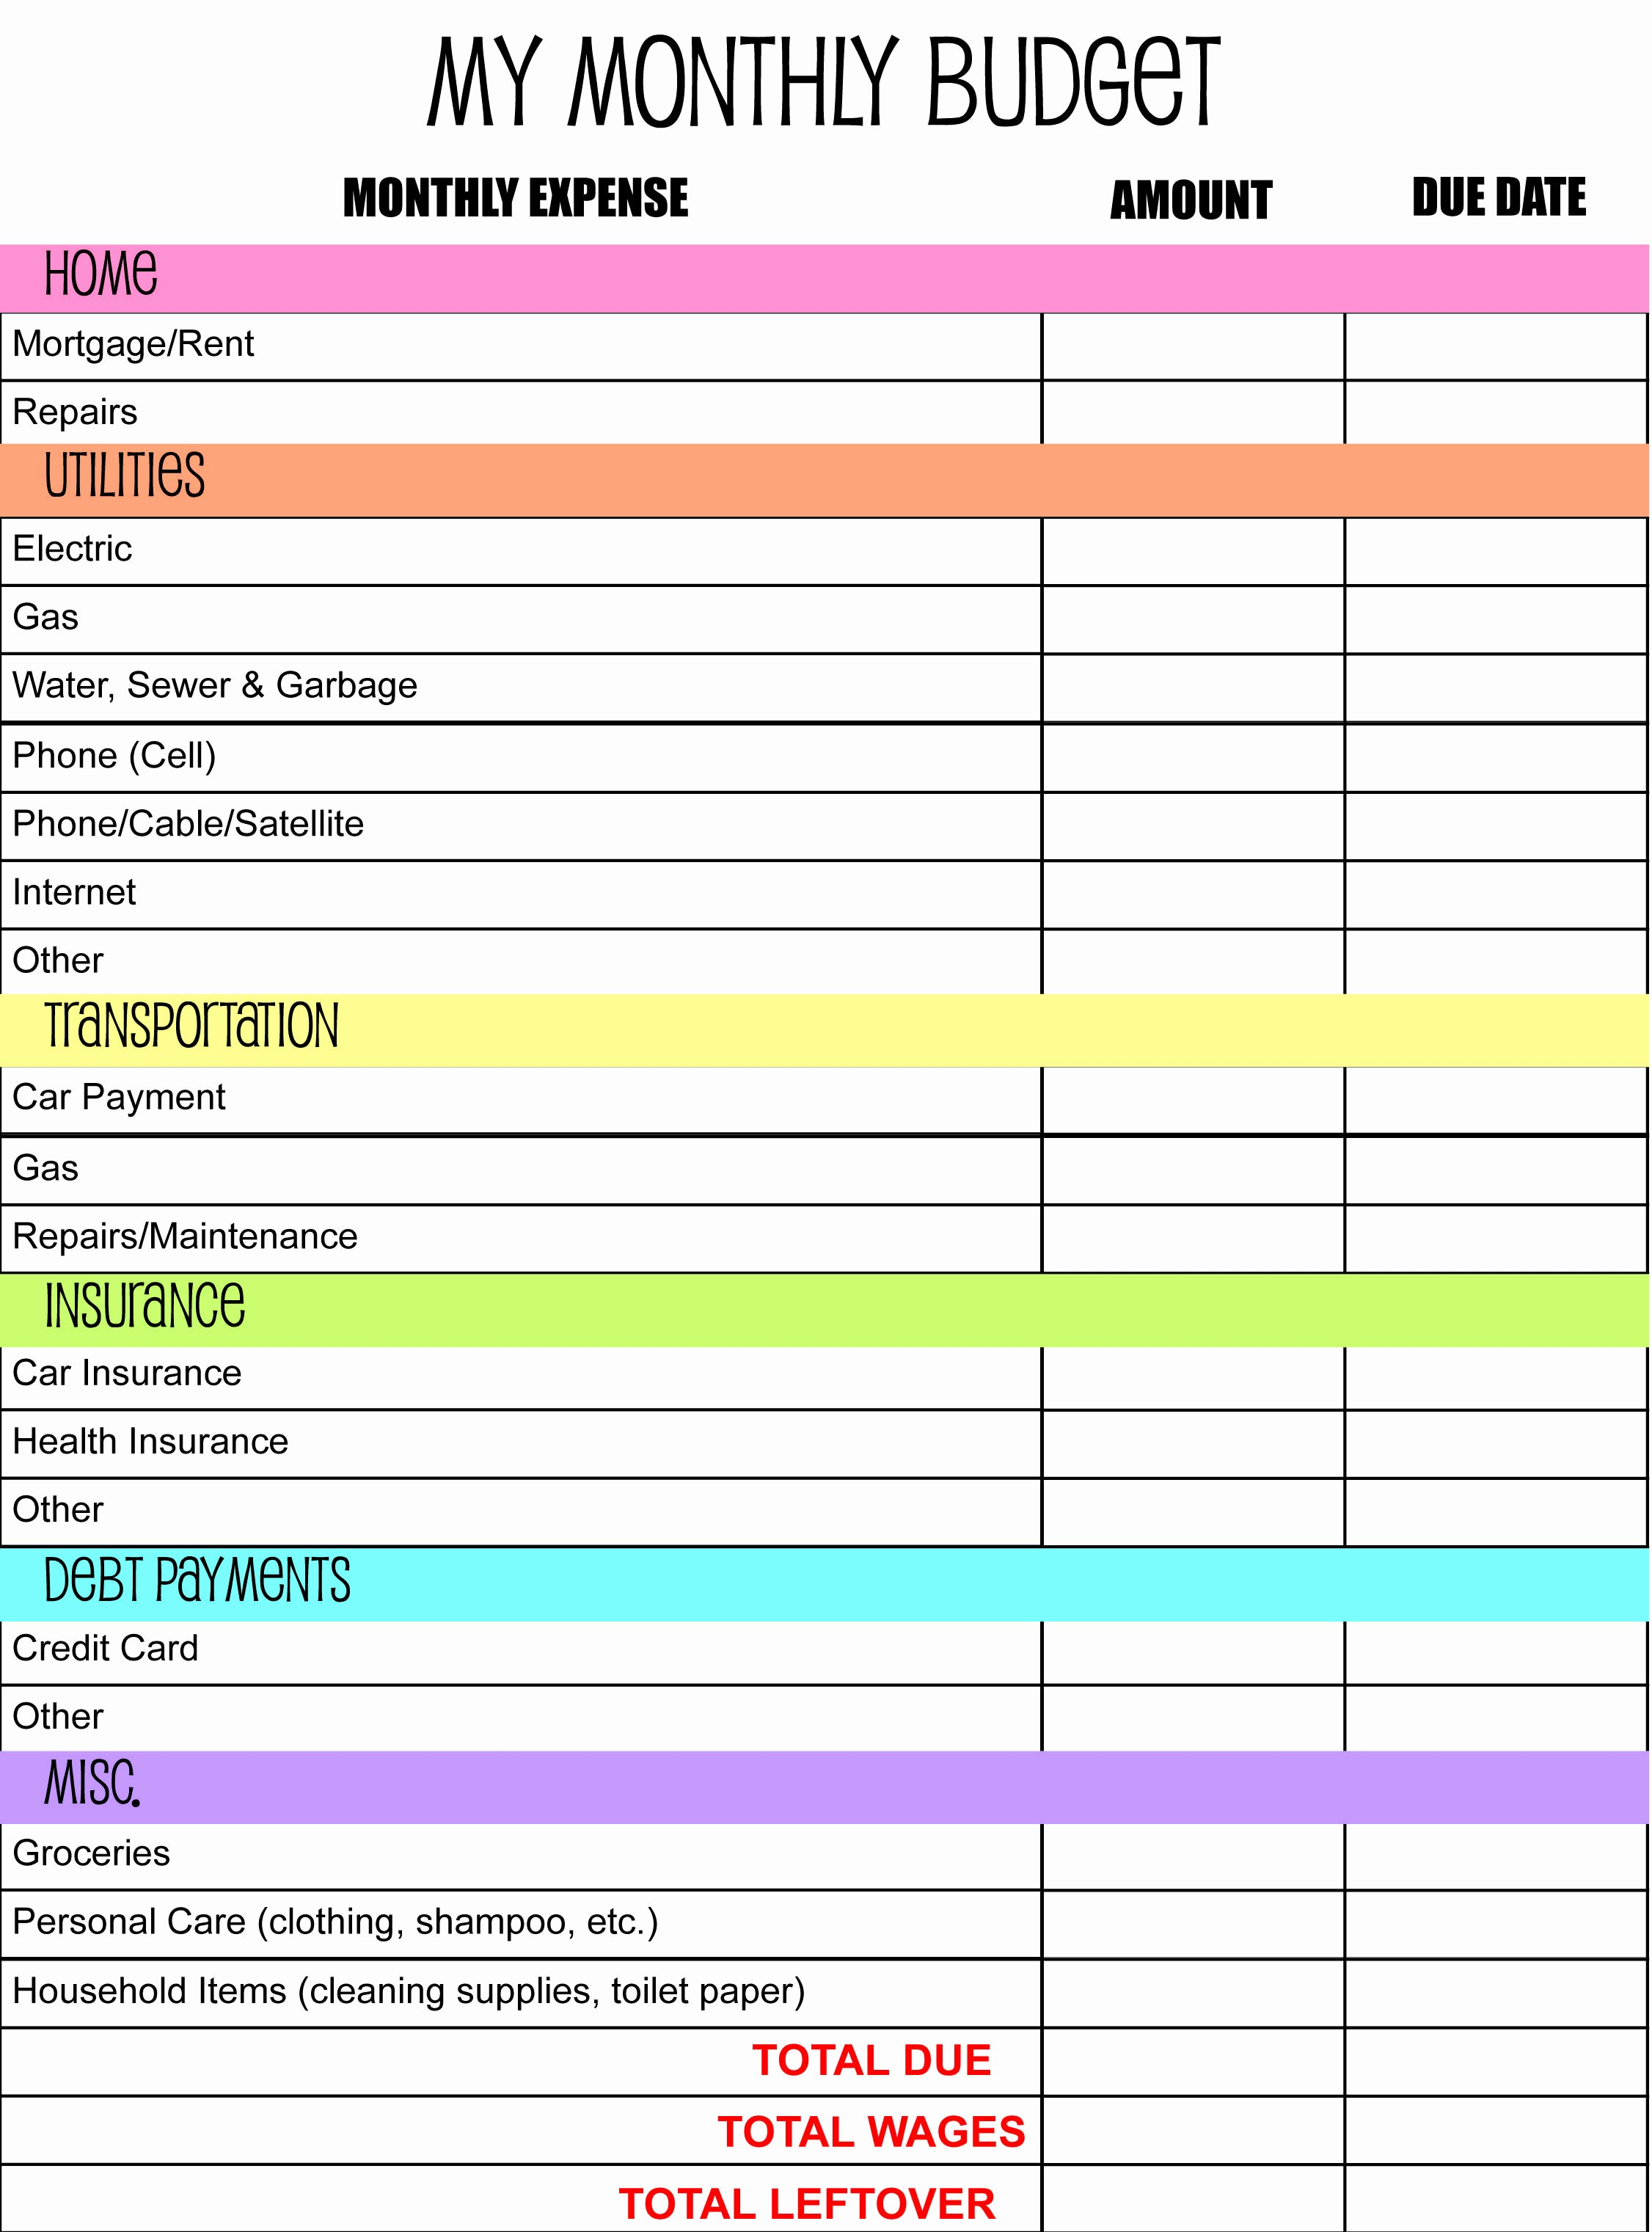 Monthly Budget Planner Template Best Of Monthly Bud Planner I Made anderson Publications